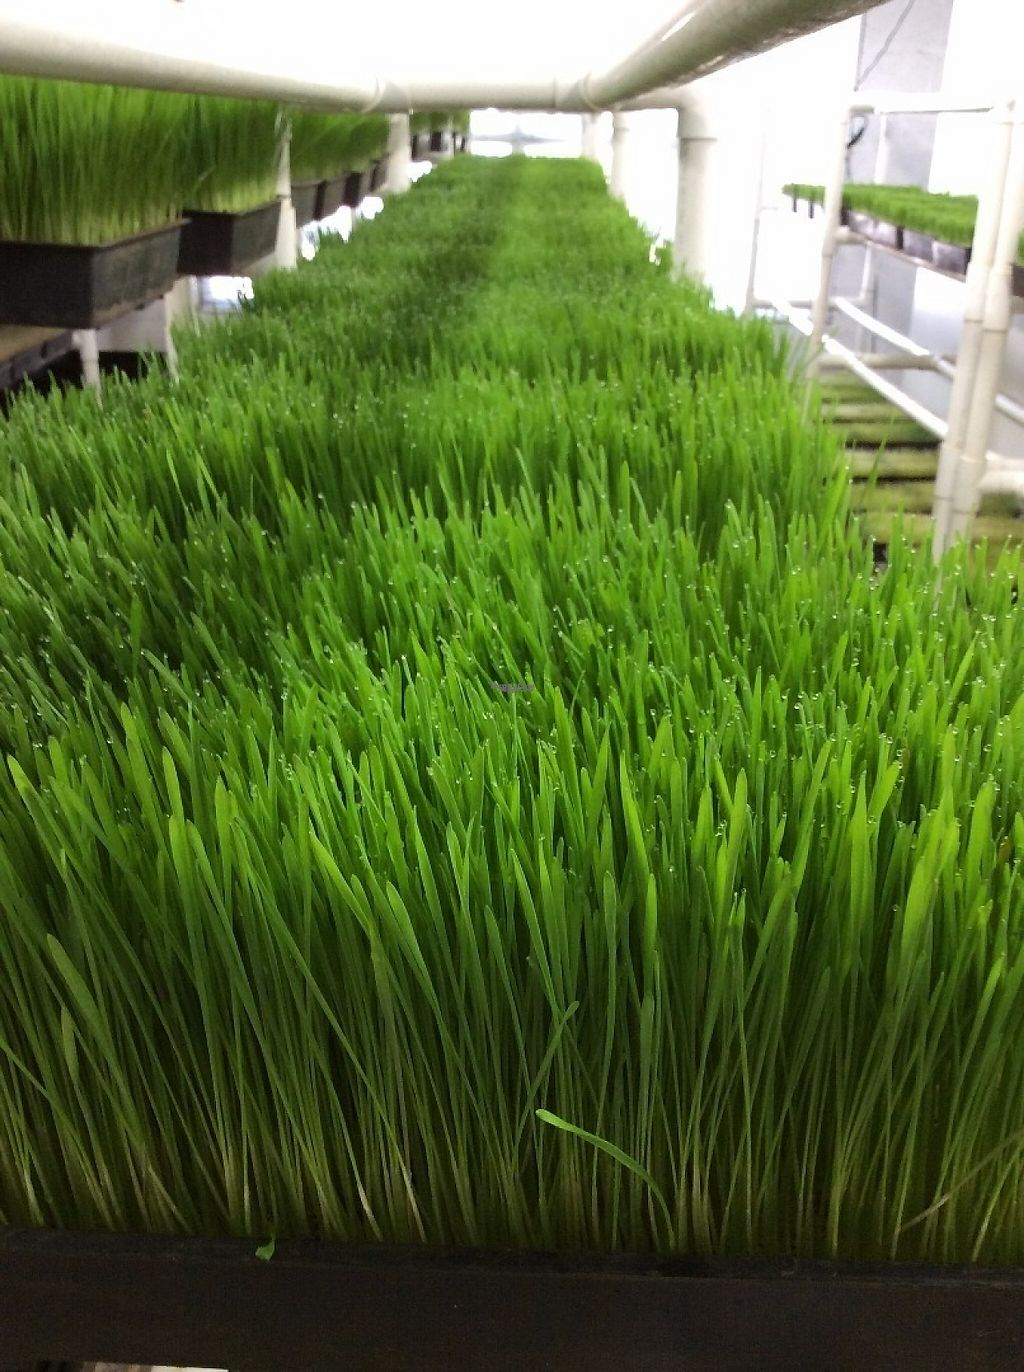 """Photo of Got Sprouts  by <a href=""""/members/profile/hellogotsprouts"""">hellogotsprouts</a> <br/>Organic wheatgrass is grown right here at Got Sprouts? in Riviera Beach <br/> January 26, 2017  - <a href='/contact/abuse/image/45032/217281'>Report</a>"""